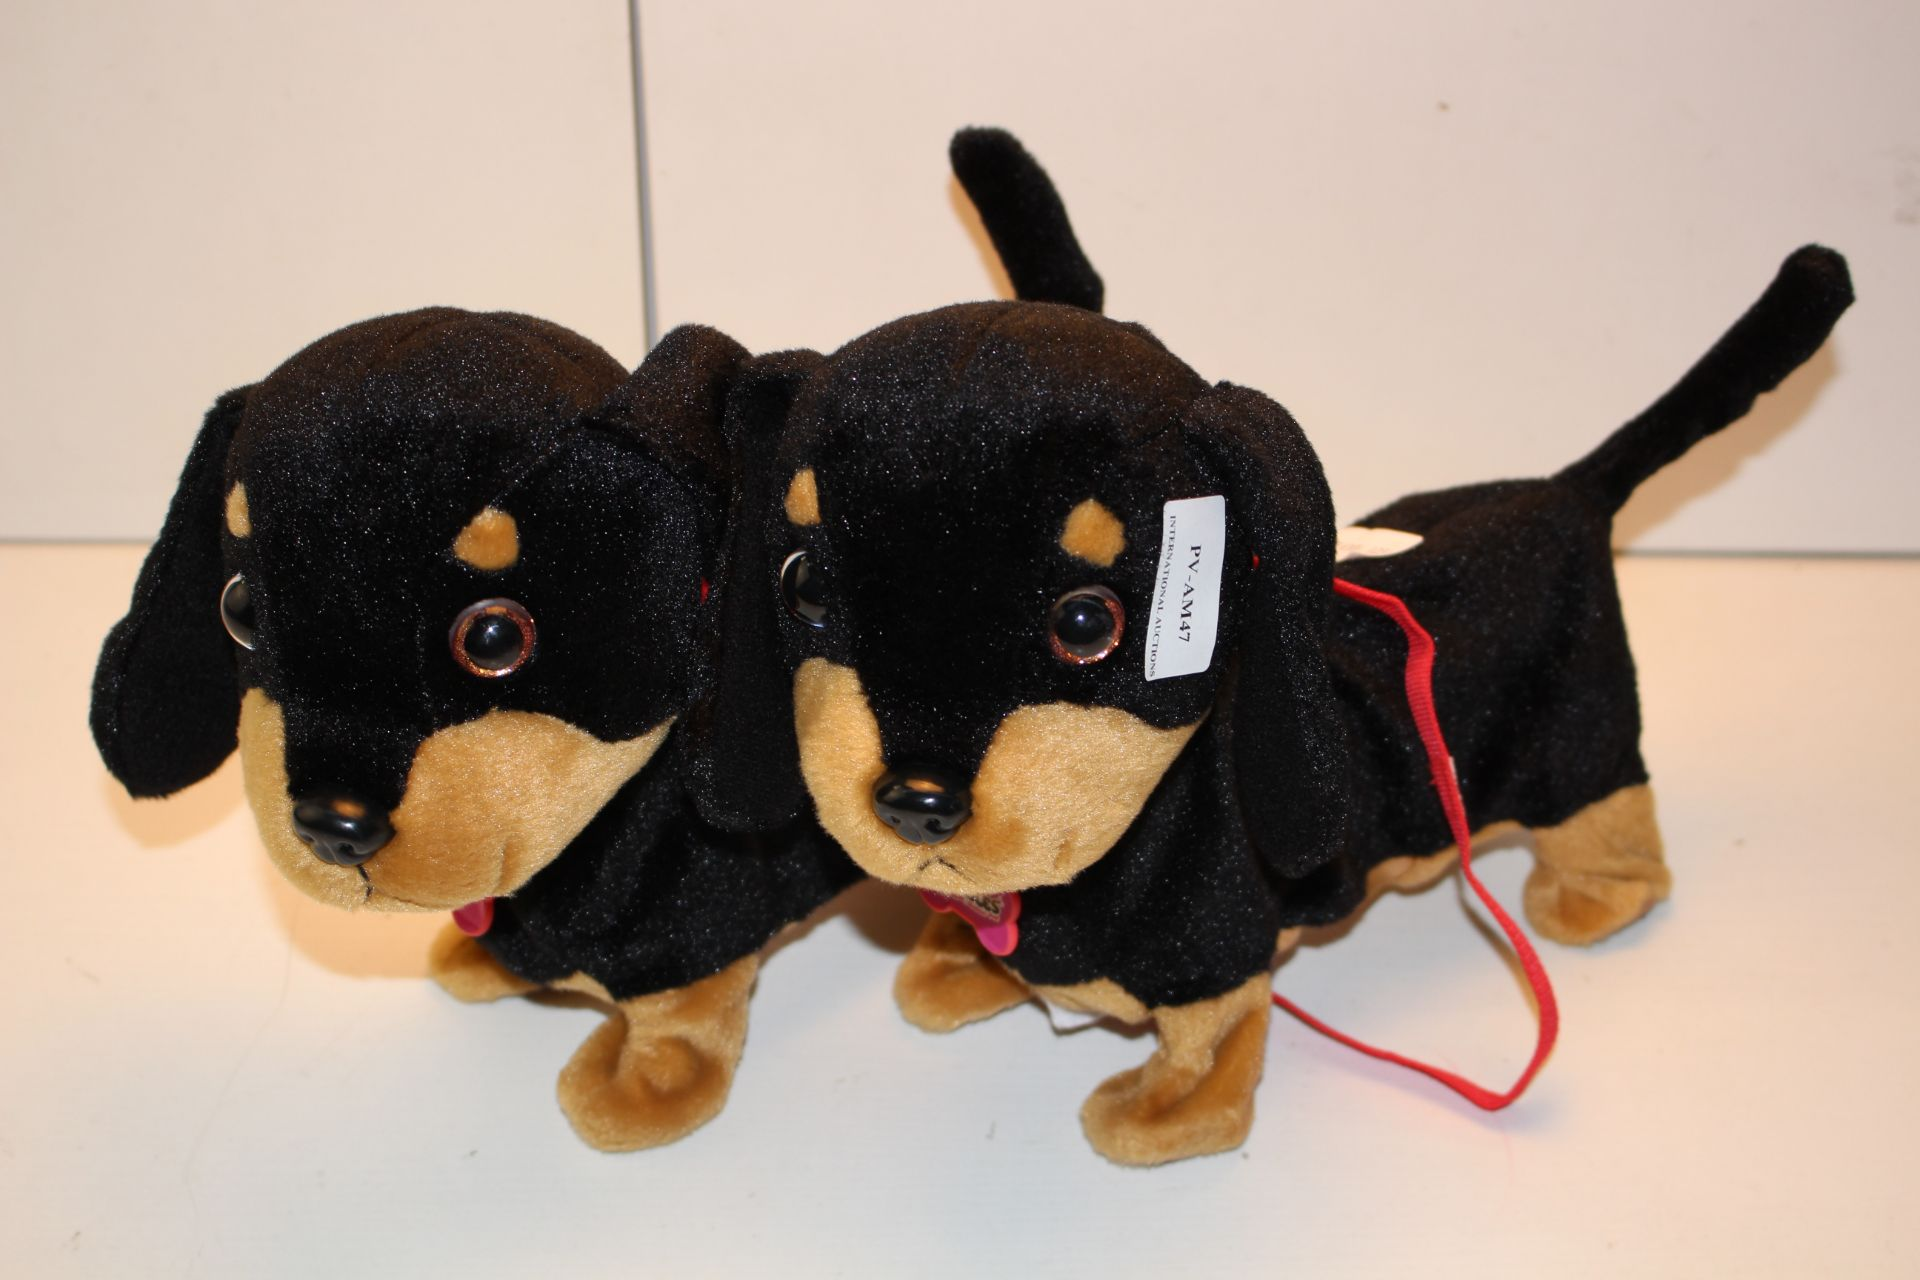 2X UNBOXED ANIMAGIC WAGGLES DOGS COMBINED RRP £60.00Condition ReportAppraisal Available on